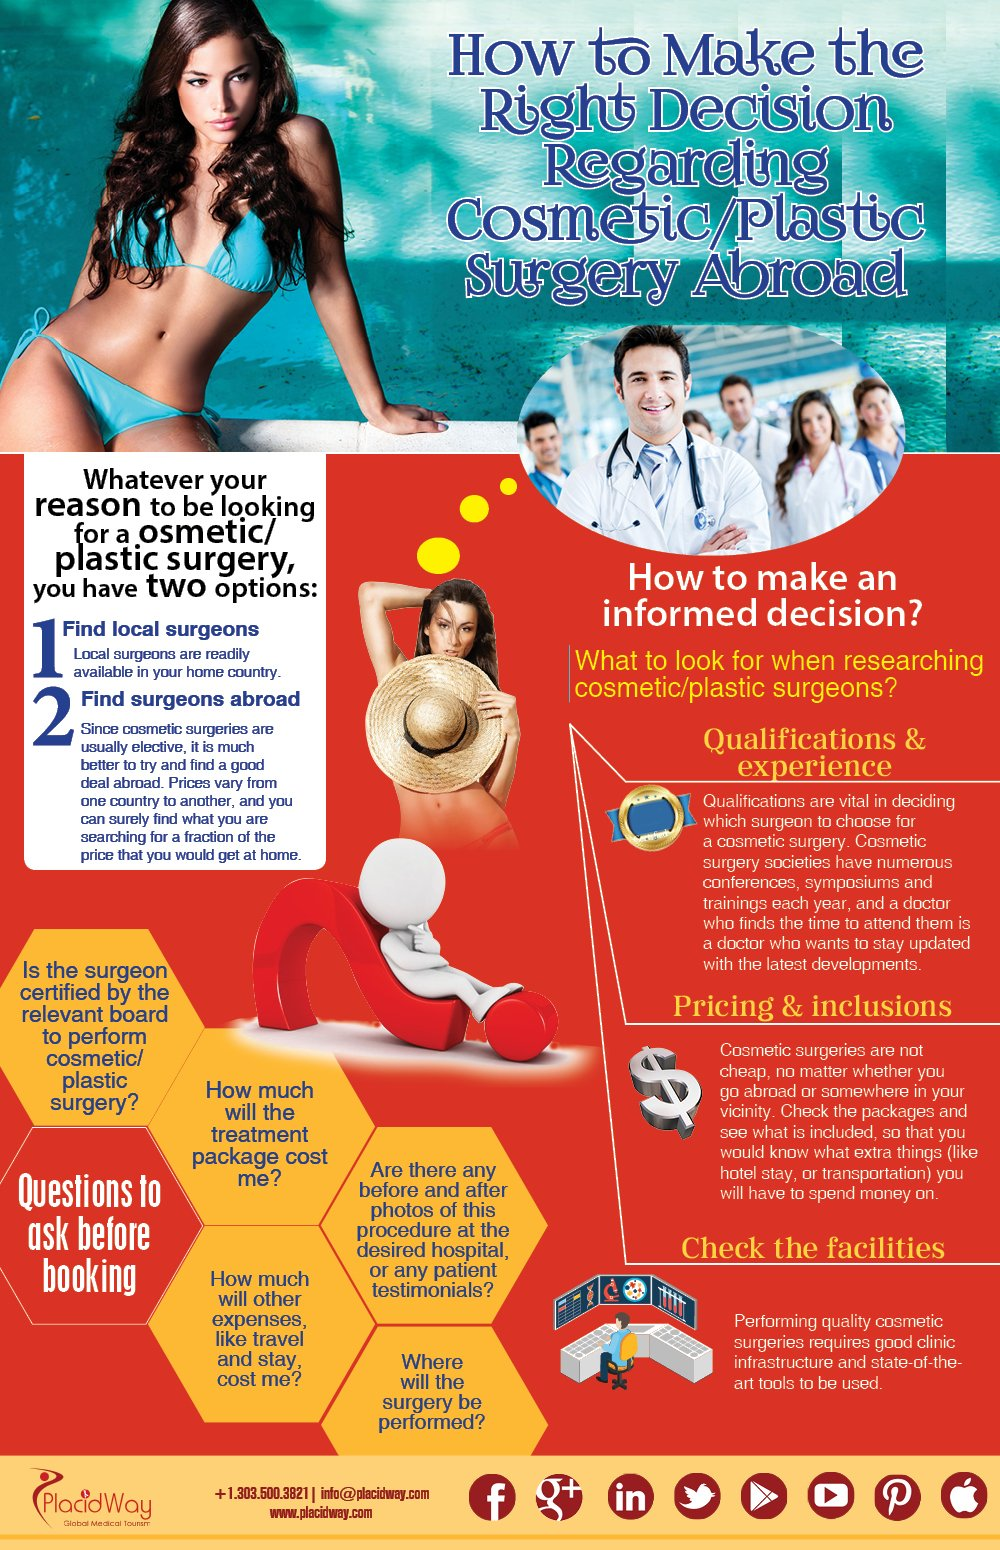 Infographics: How to Make the Right Decision Regarding Cosmetic/Plastic Surgery Abroad